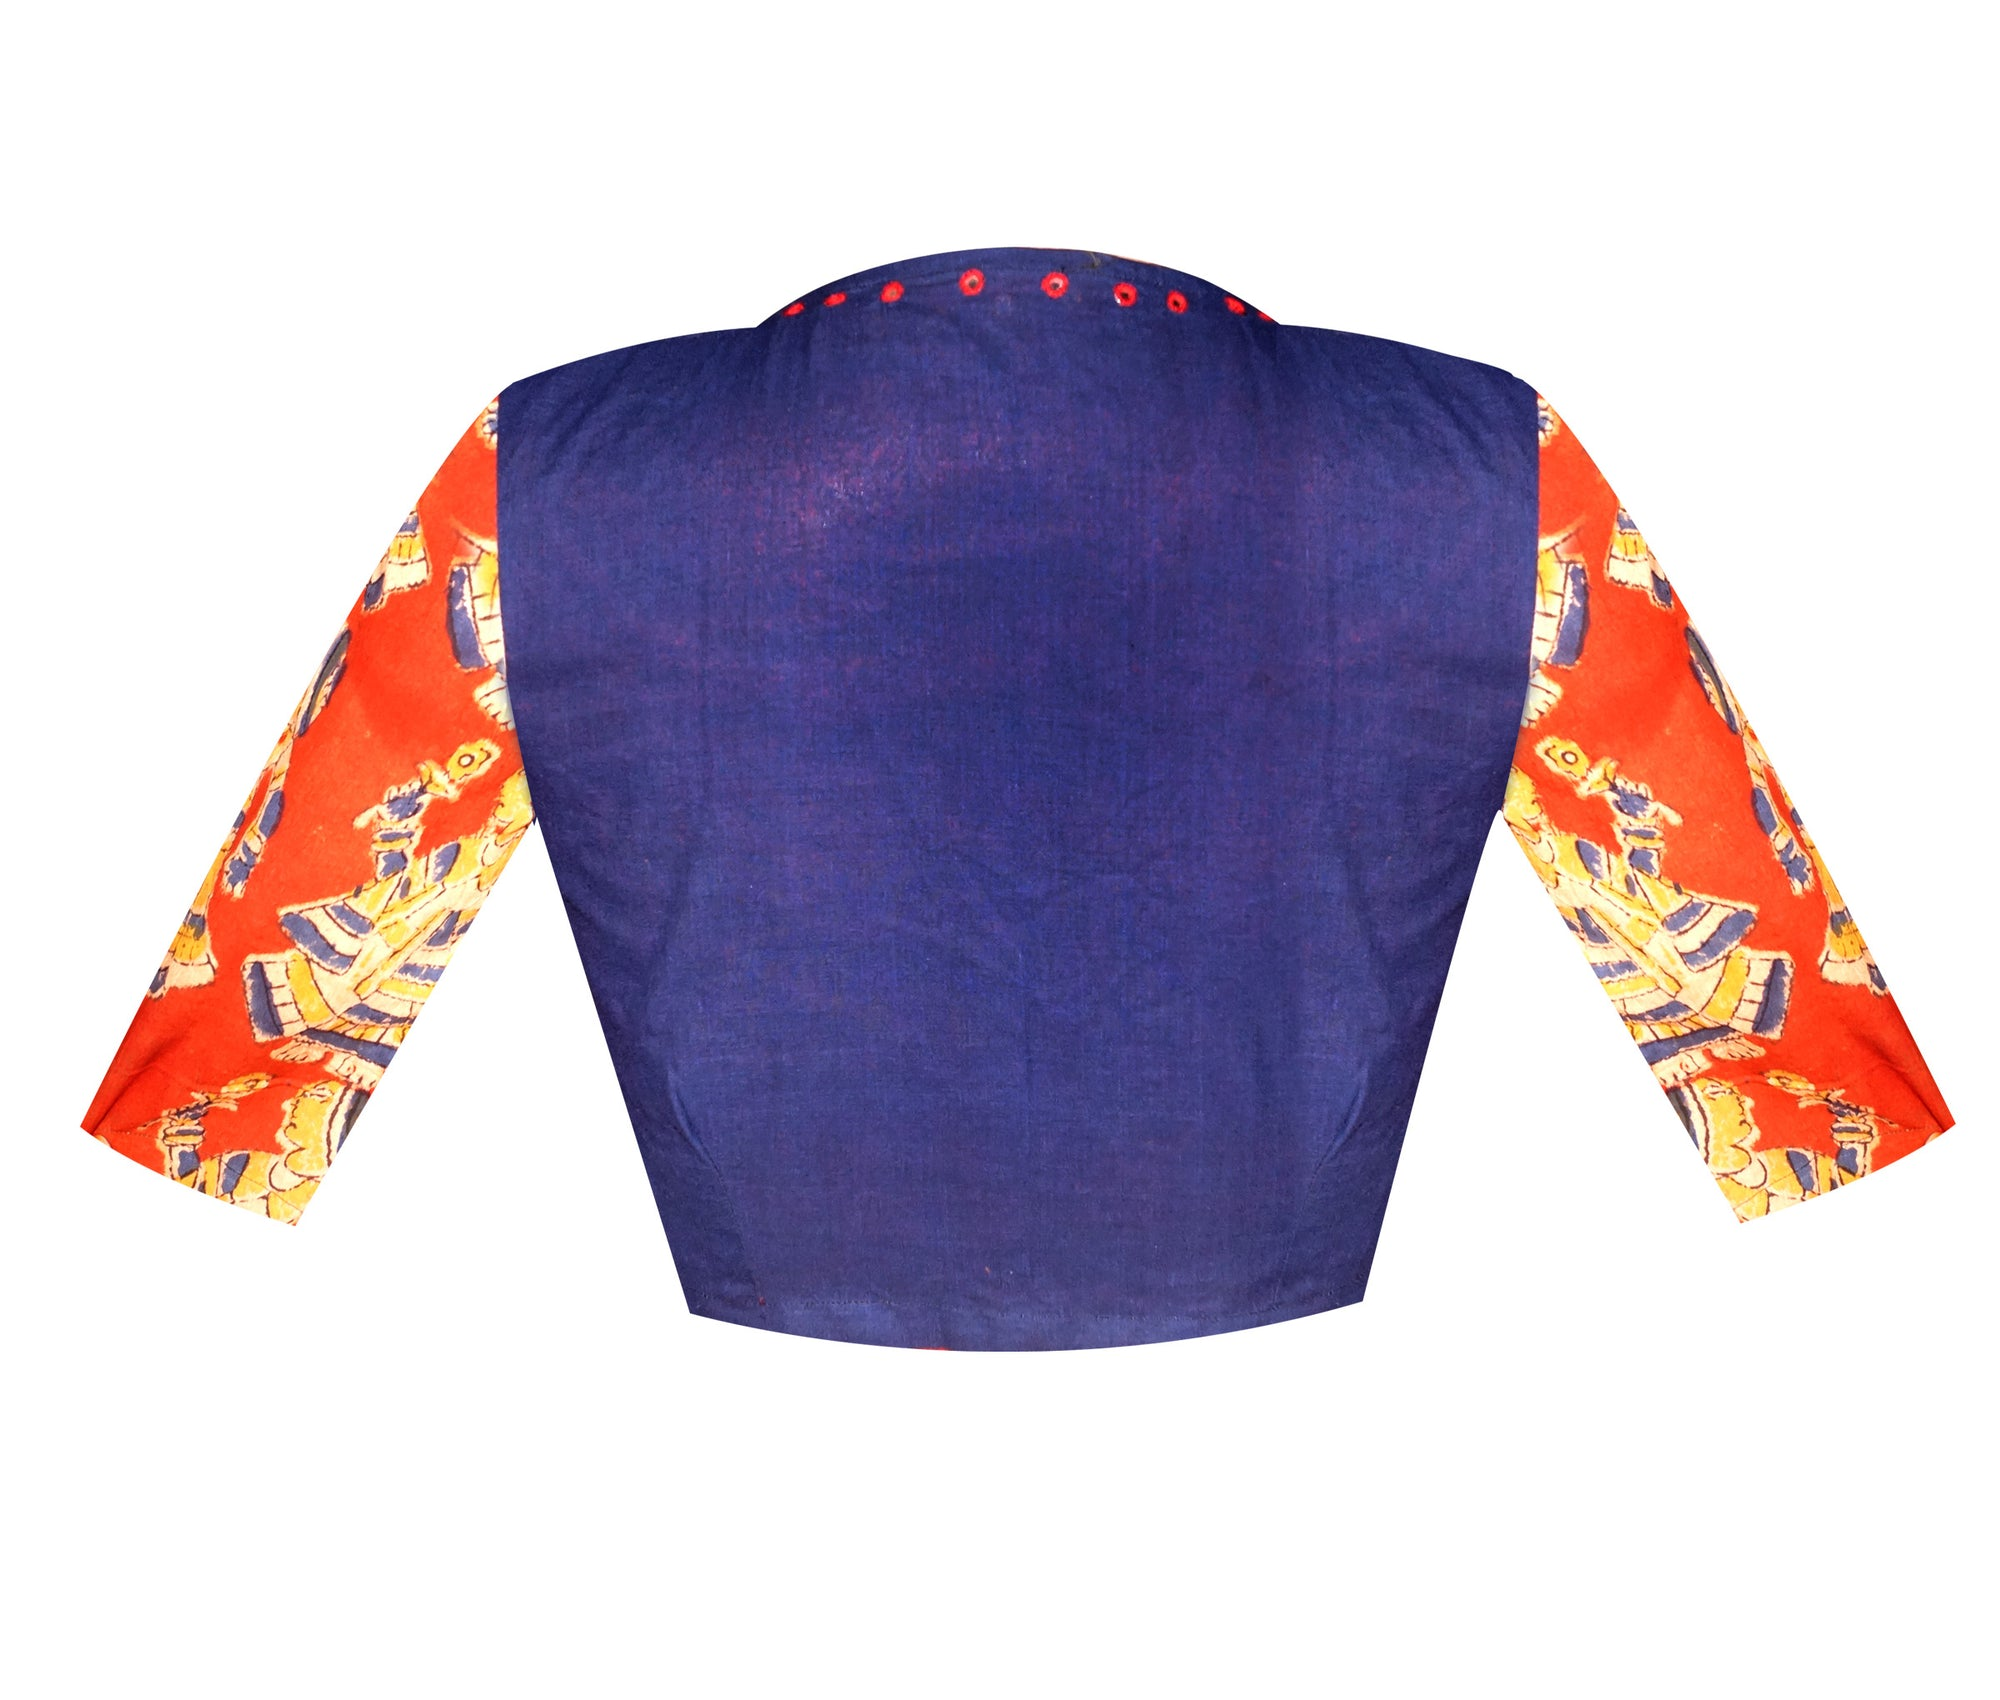 High Neck South Cotton and Kalamkari Elbow Sleeves Readymade Blouse